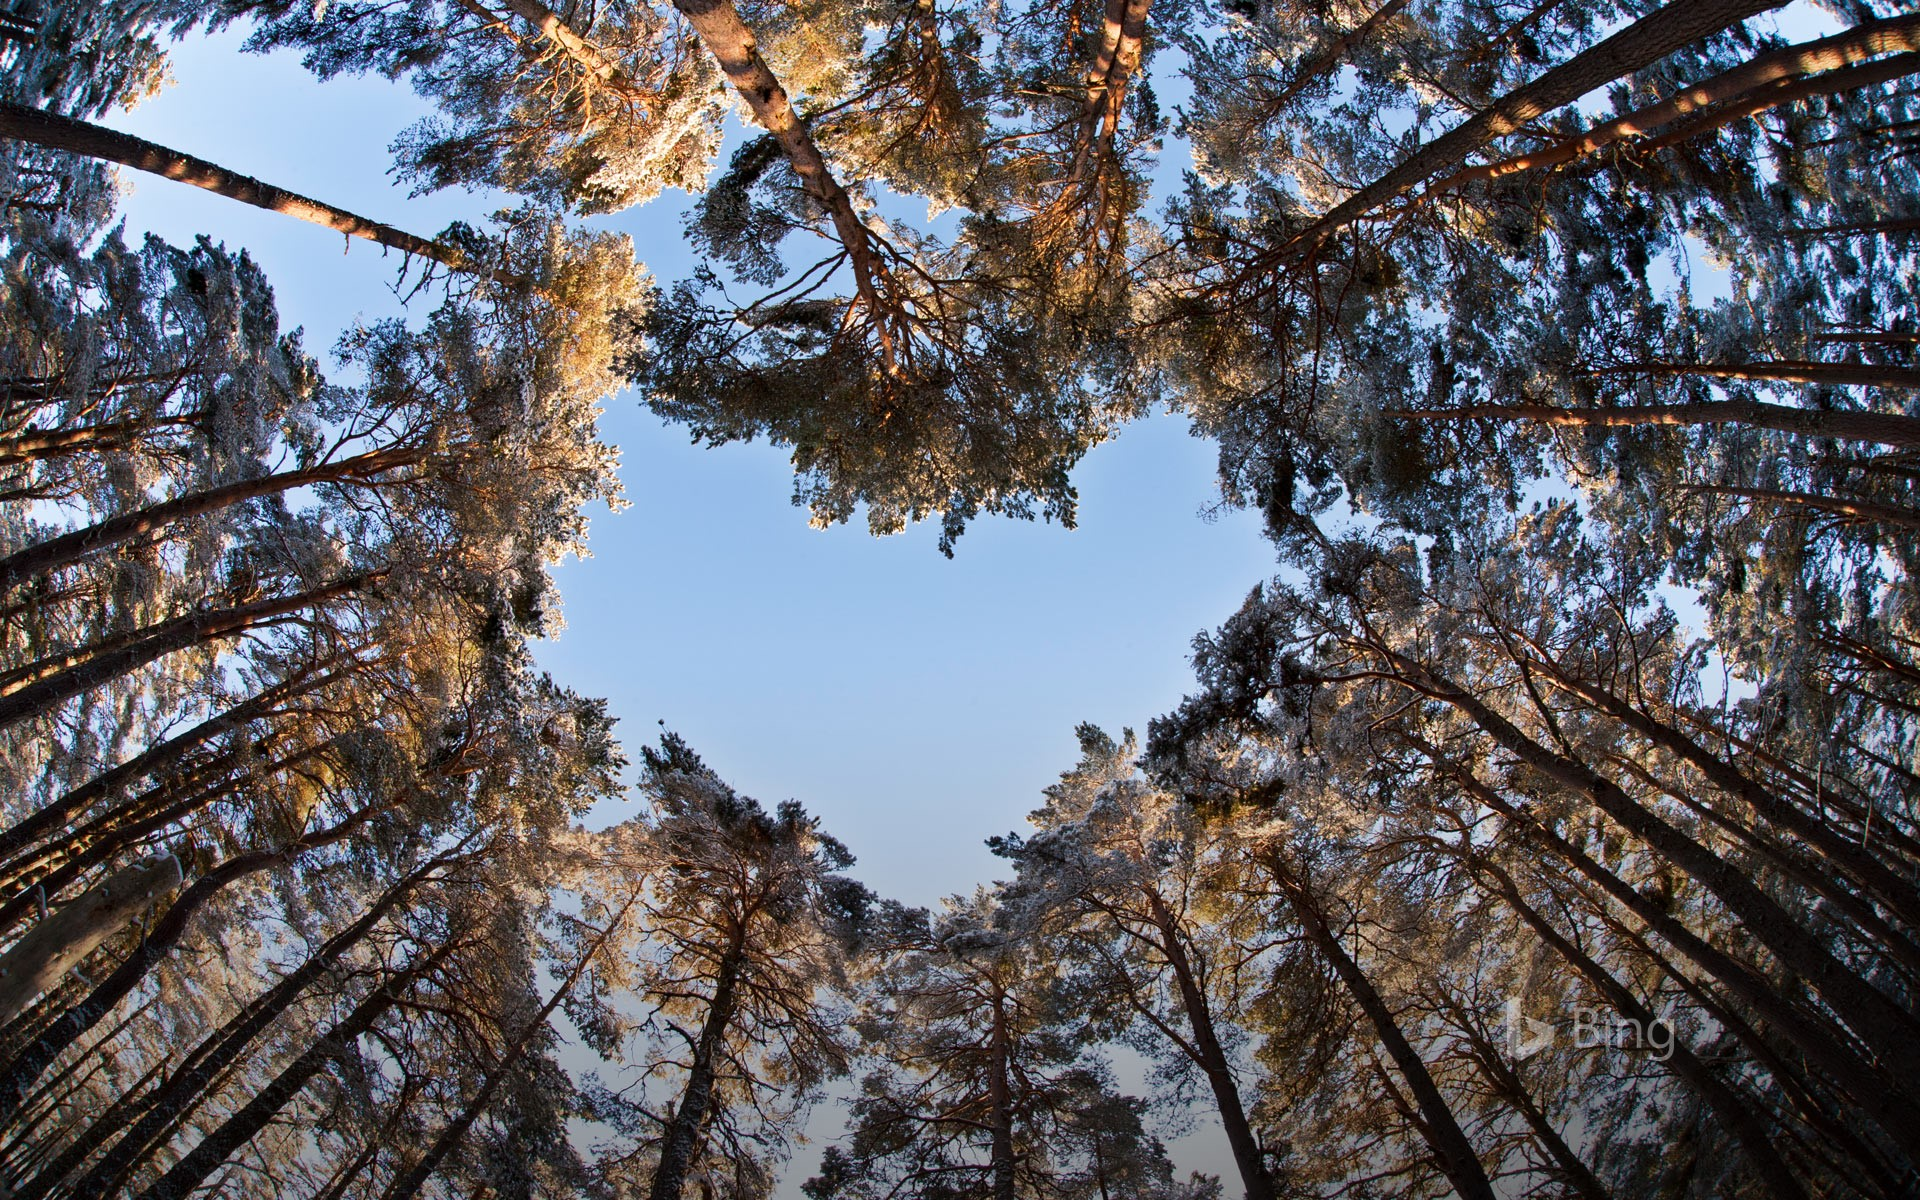 A heart-shaped opening in a canopy of Scots pines to celebrate National Tree Week (© Mark Hamblin/2020VISION/Minden Pictures)